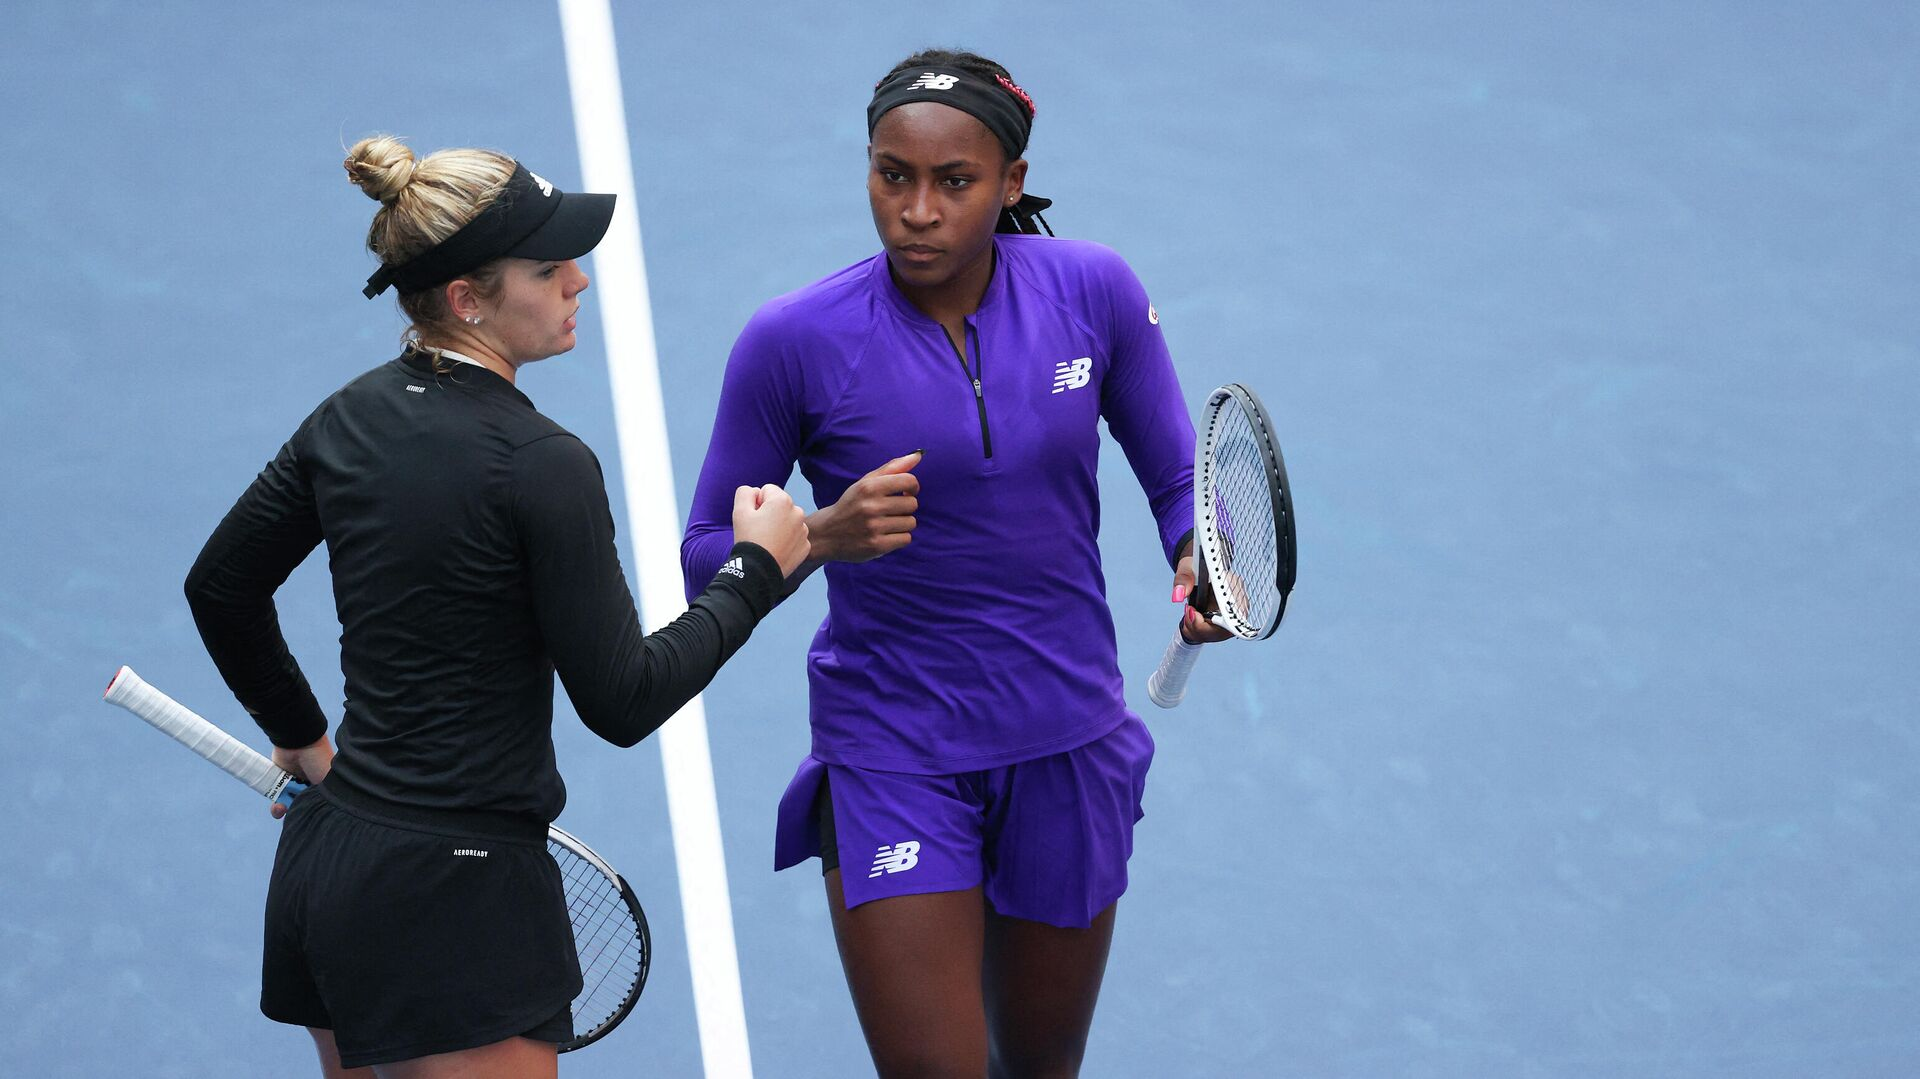 NEW YORK, NEW YORK - SEPTEMBER 08: Coco Gauff of the United States and Catherine McNally of the United States celebrate against Su-Wei Hsieh of Chinese Taipei and Elise Mertens of Belgium during their Women's Doubles quarterfinals match on Day Ten of the 2021 US Open at the USTA Billie Jean King National Tennis Center on September 08, 2021 in the Flushing neighborhood of the Queens borough of New York City.   Elsa/Getty Images/AFP (Photo by ELSA / GETTY IMAGES NORTH AMERICA / Getty Images via AFP) - РИА Новости, 1920, 10.09.2021